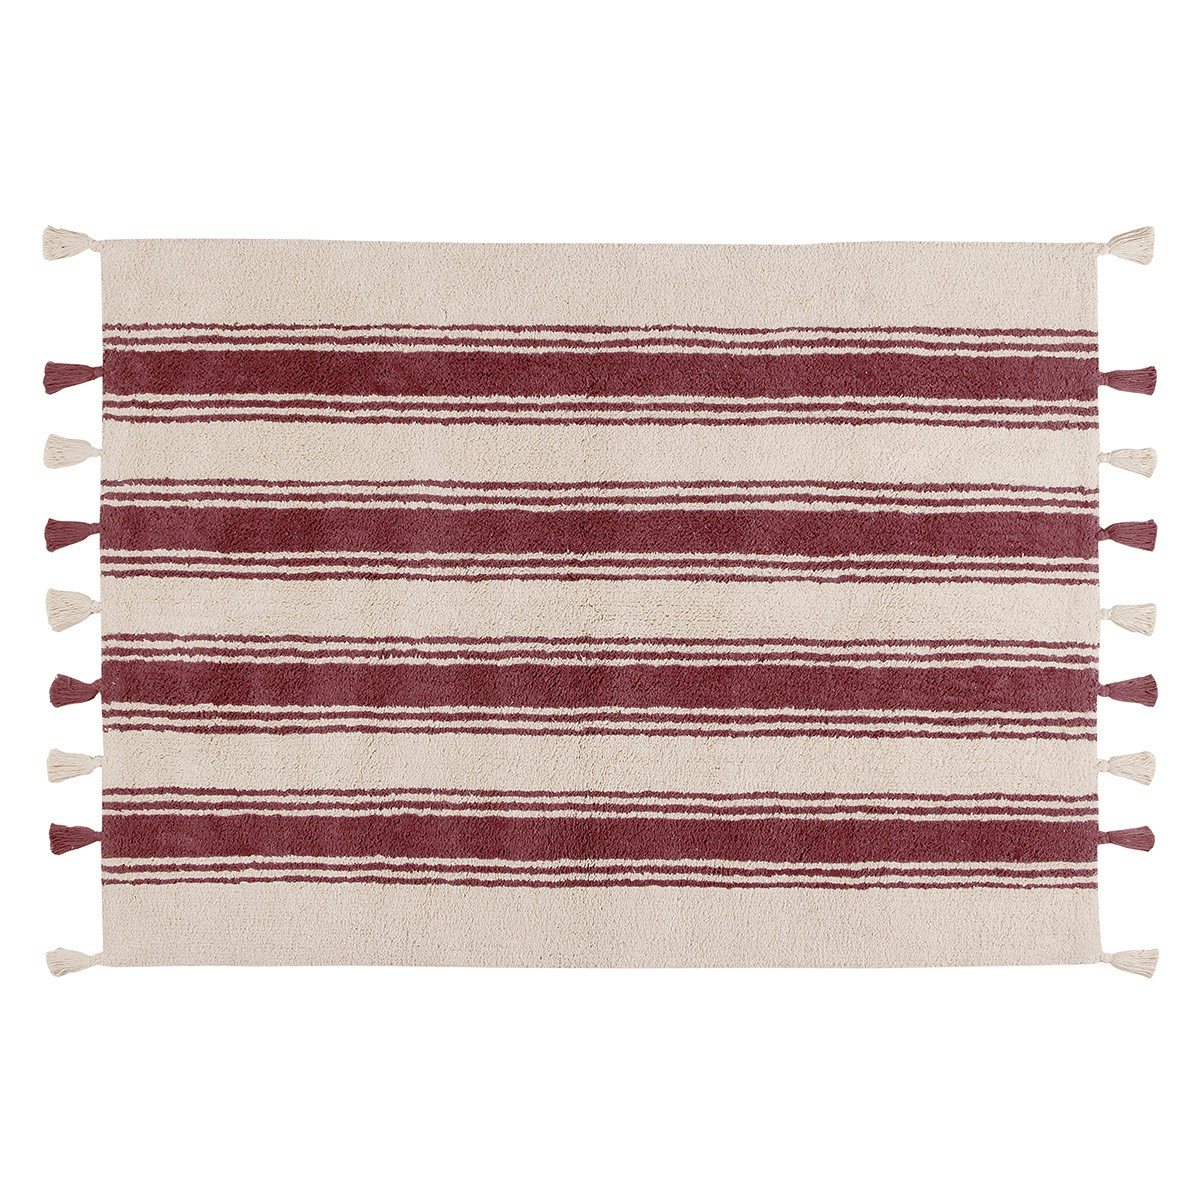 Πλενόμενο Χαλί (120×160) Lorena Canals Stripes Marsala